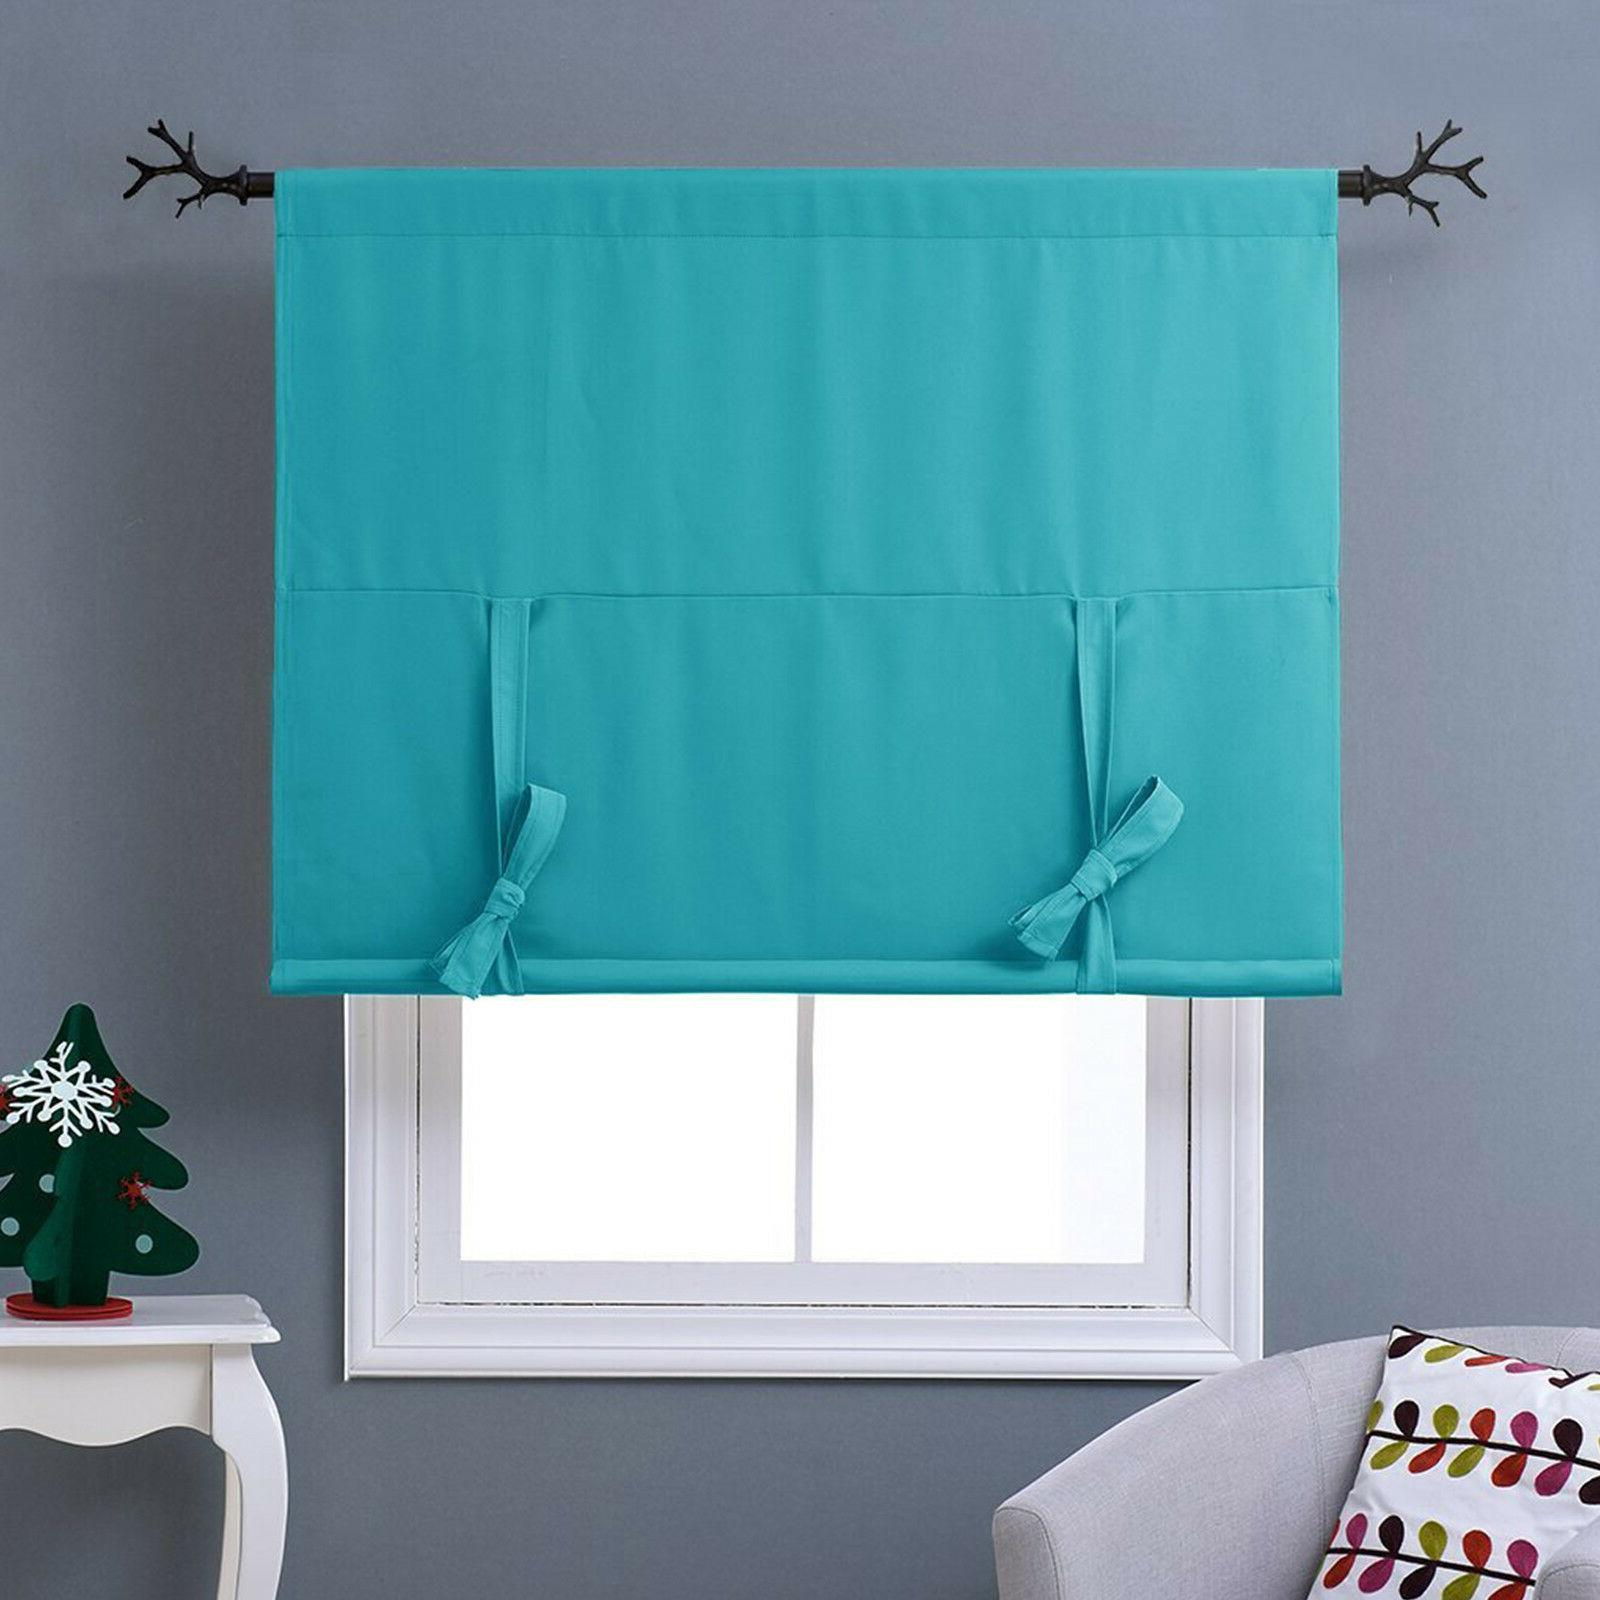 Thermal Drapes Curtains Tie Up Shades